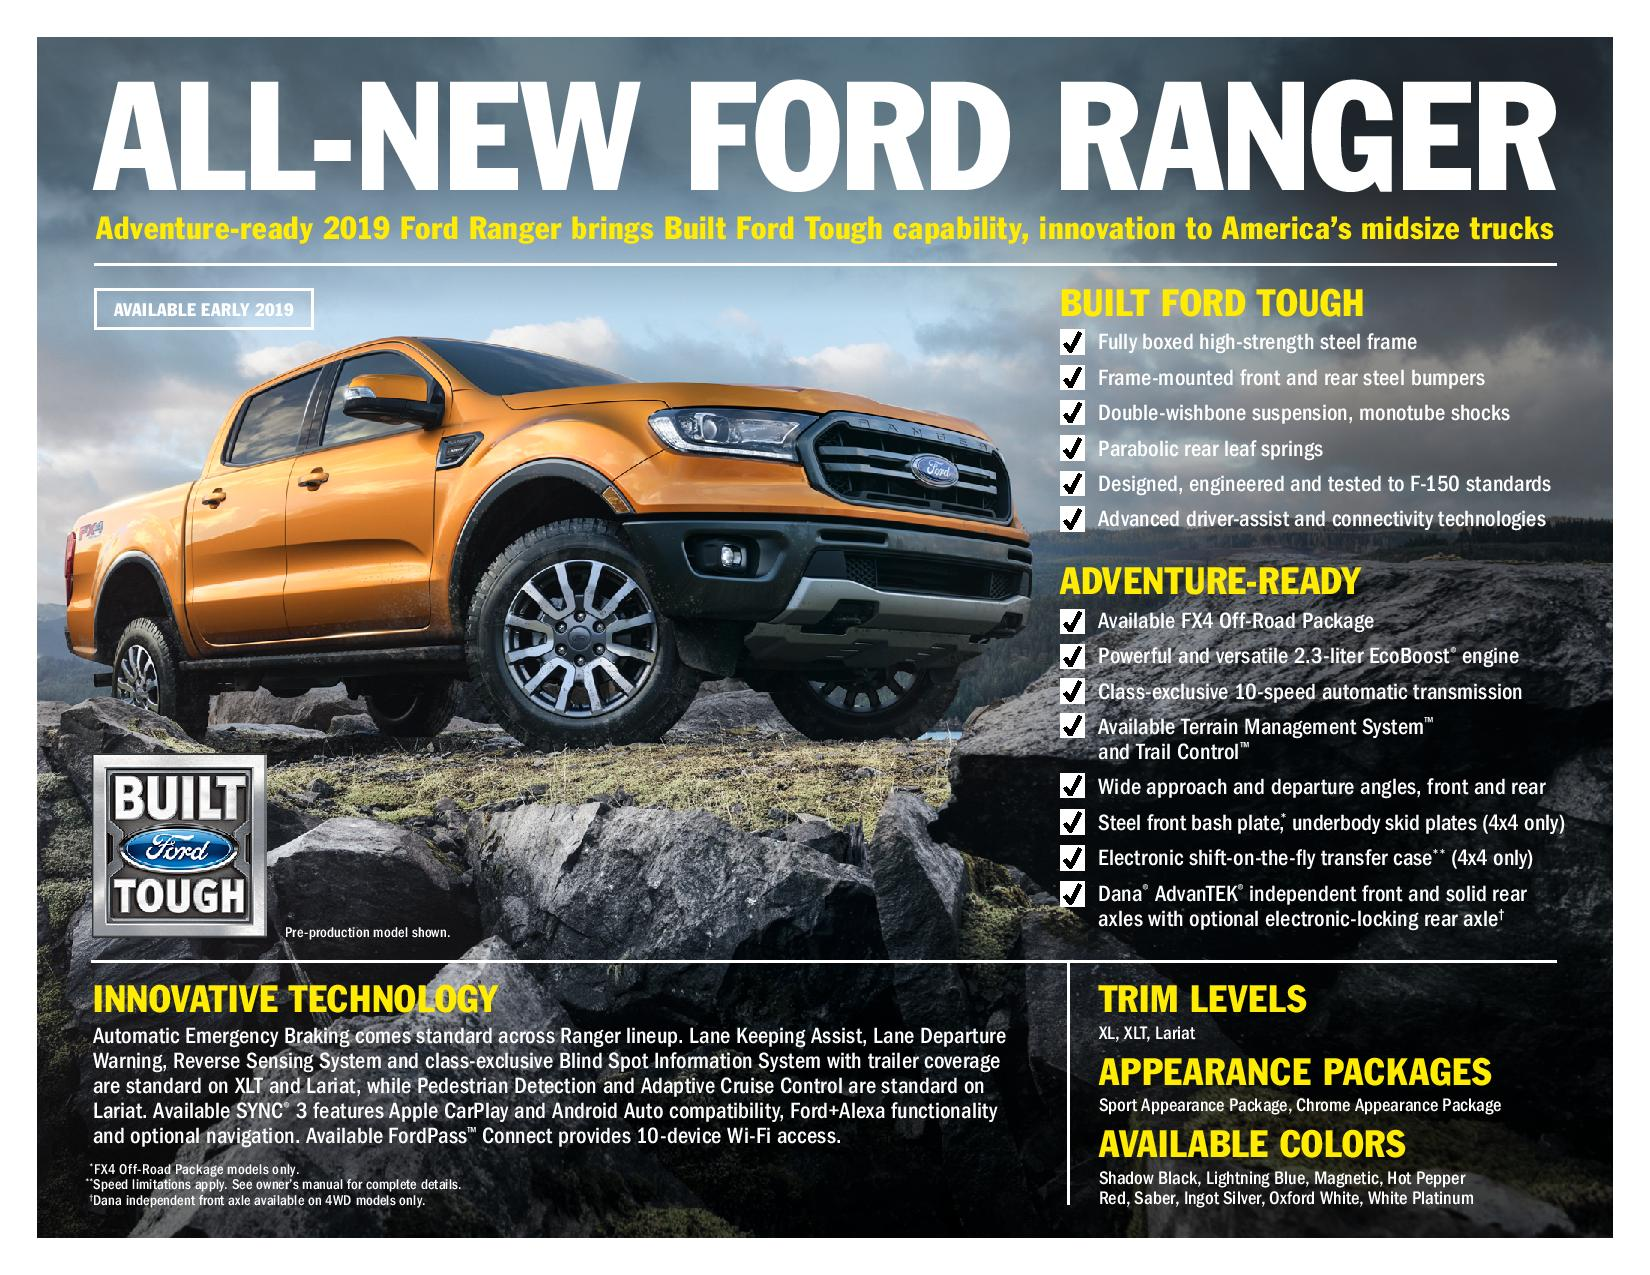 Ford Ranger marks Ford's return to mid-size pickup market